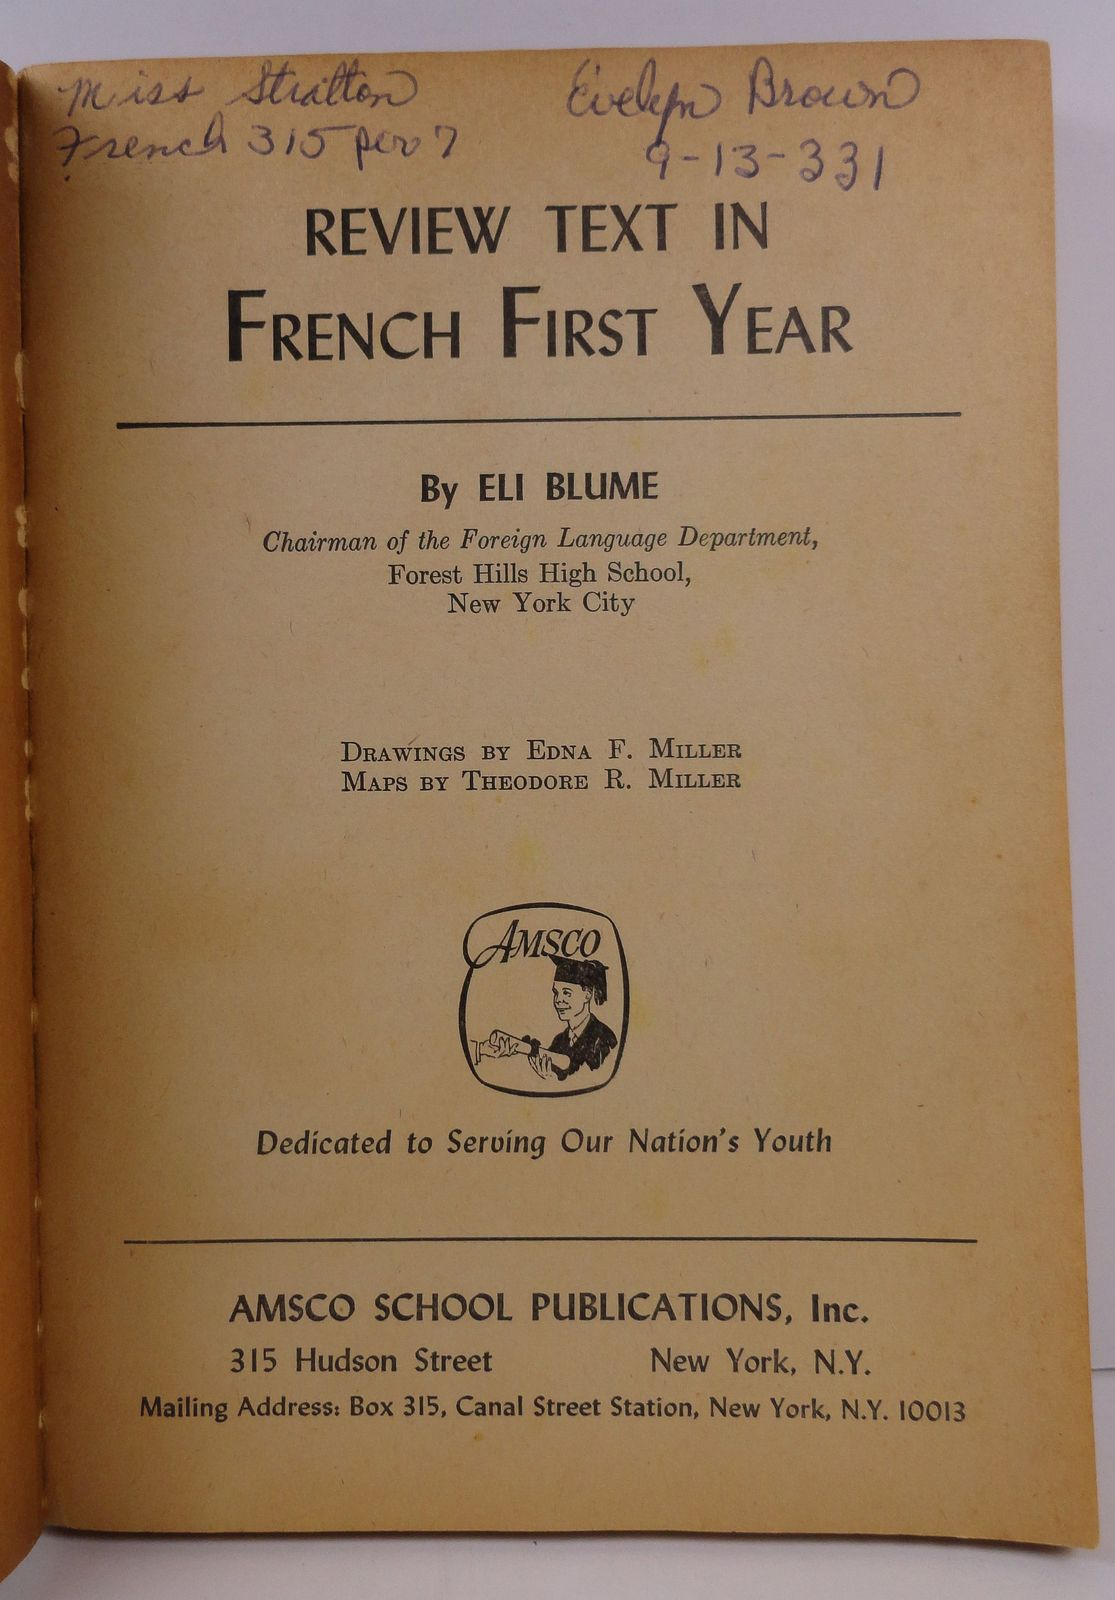 Review Text in French First Year by Eli Blume Amsco School